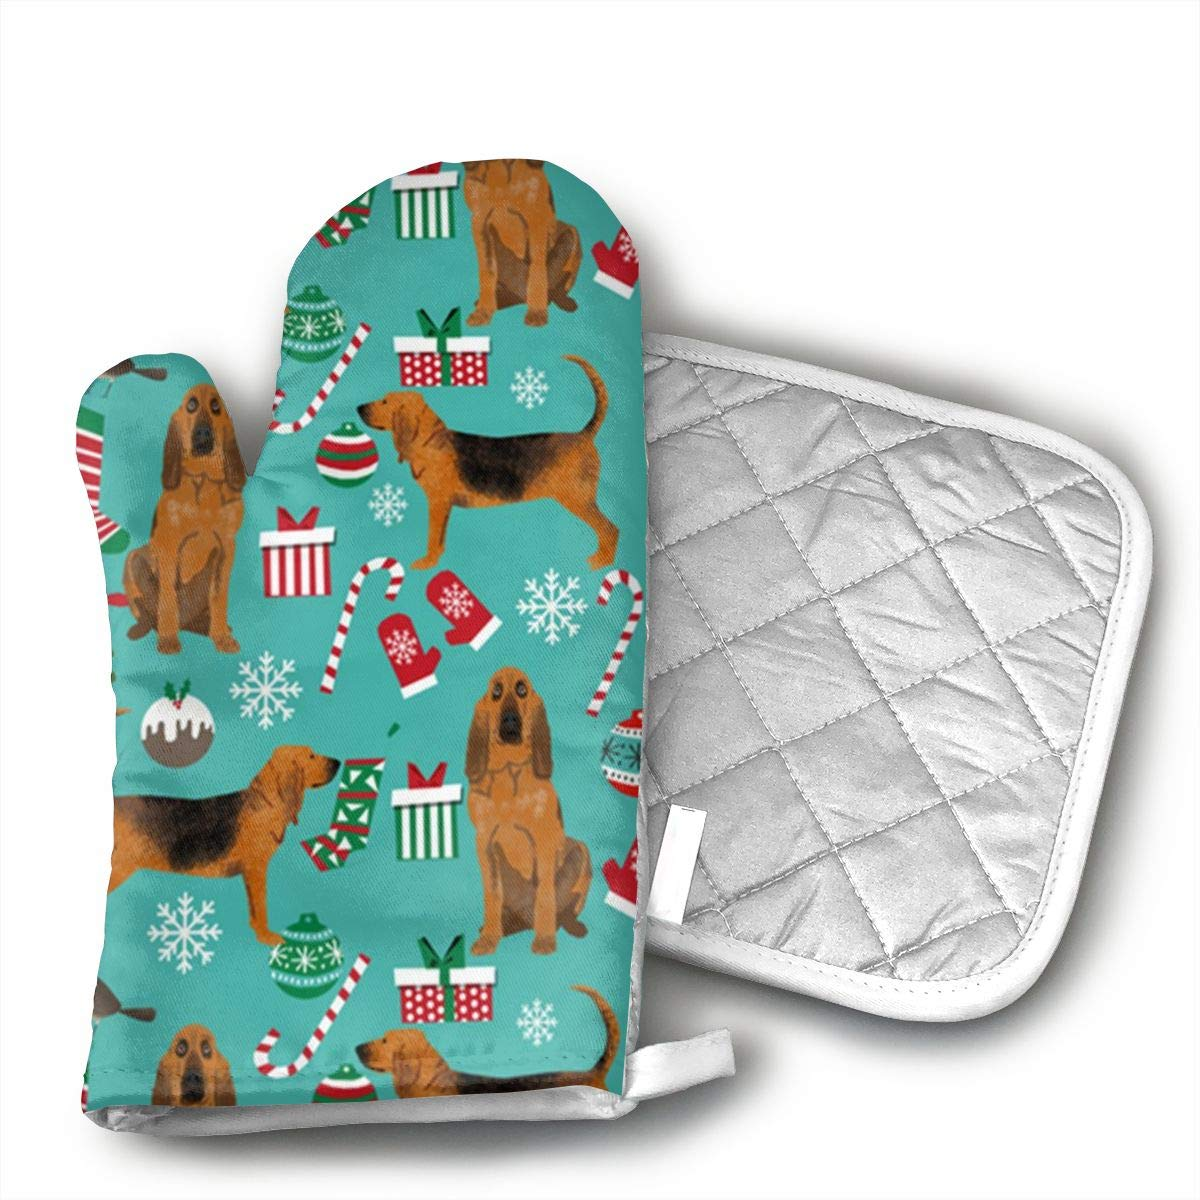 GRSTfsm Bloodhound Fabric and Xmas Oven Mitts,Kitchen Oven Glove Suitable for Baking, Grilling, Cooking, Barbecue